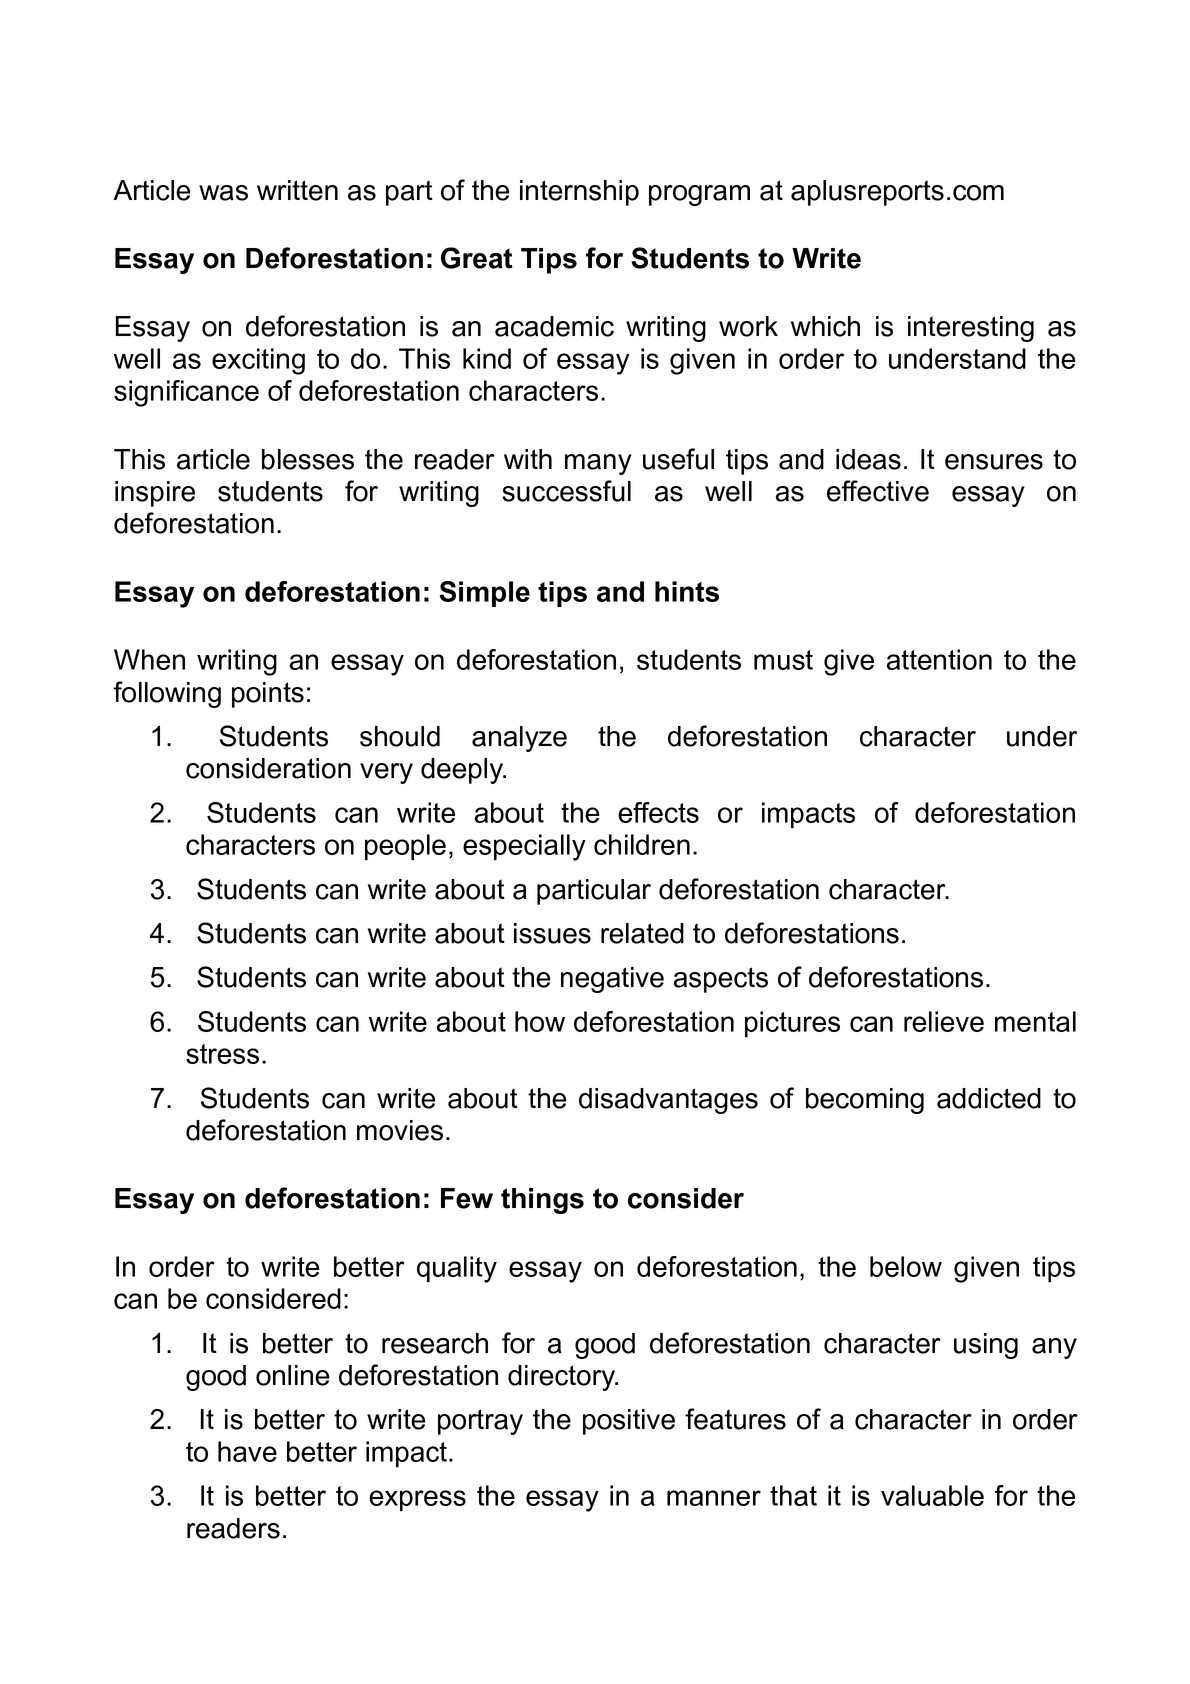 essay about good character essay good character essay on symbolism  calam eacute o essay on deforestation great tips for students to write